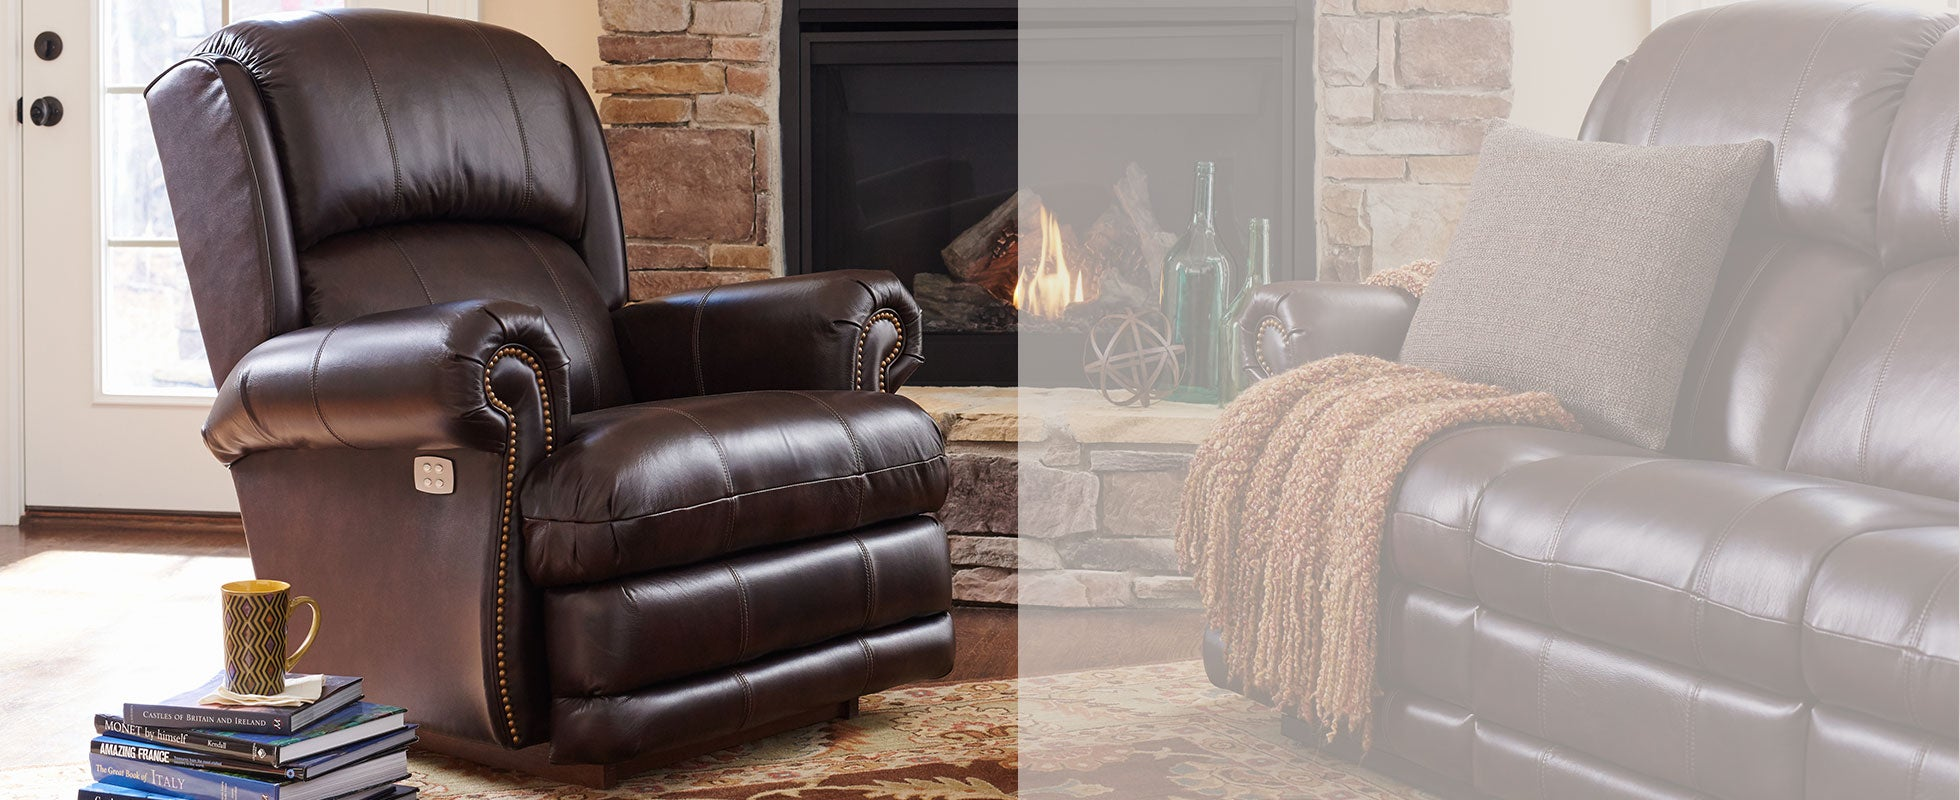 Recliner Chairs & Rocker Recliners | La-Z-Boy